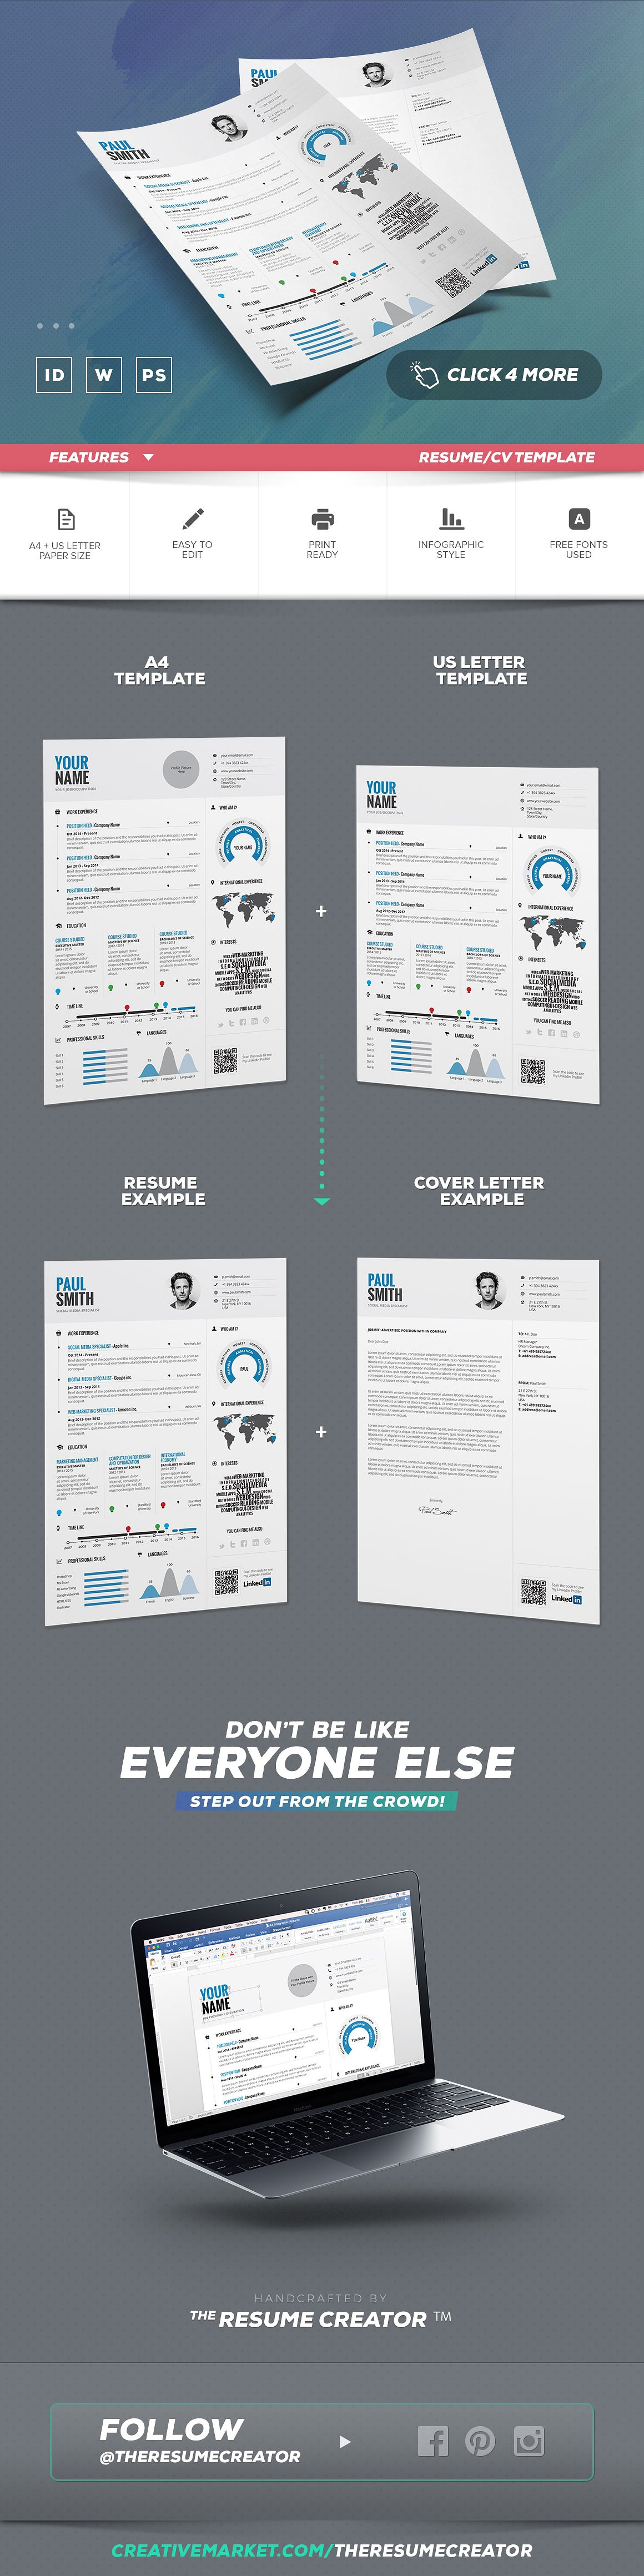 Infographic Resume/Cv Template Vol.1 | Pinterest